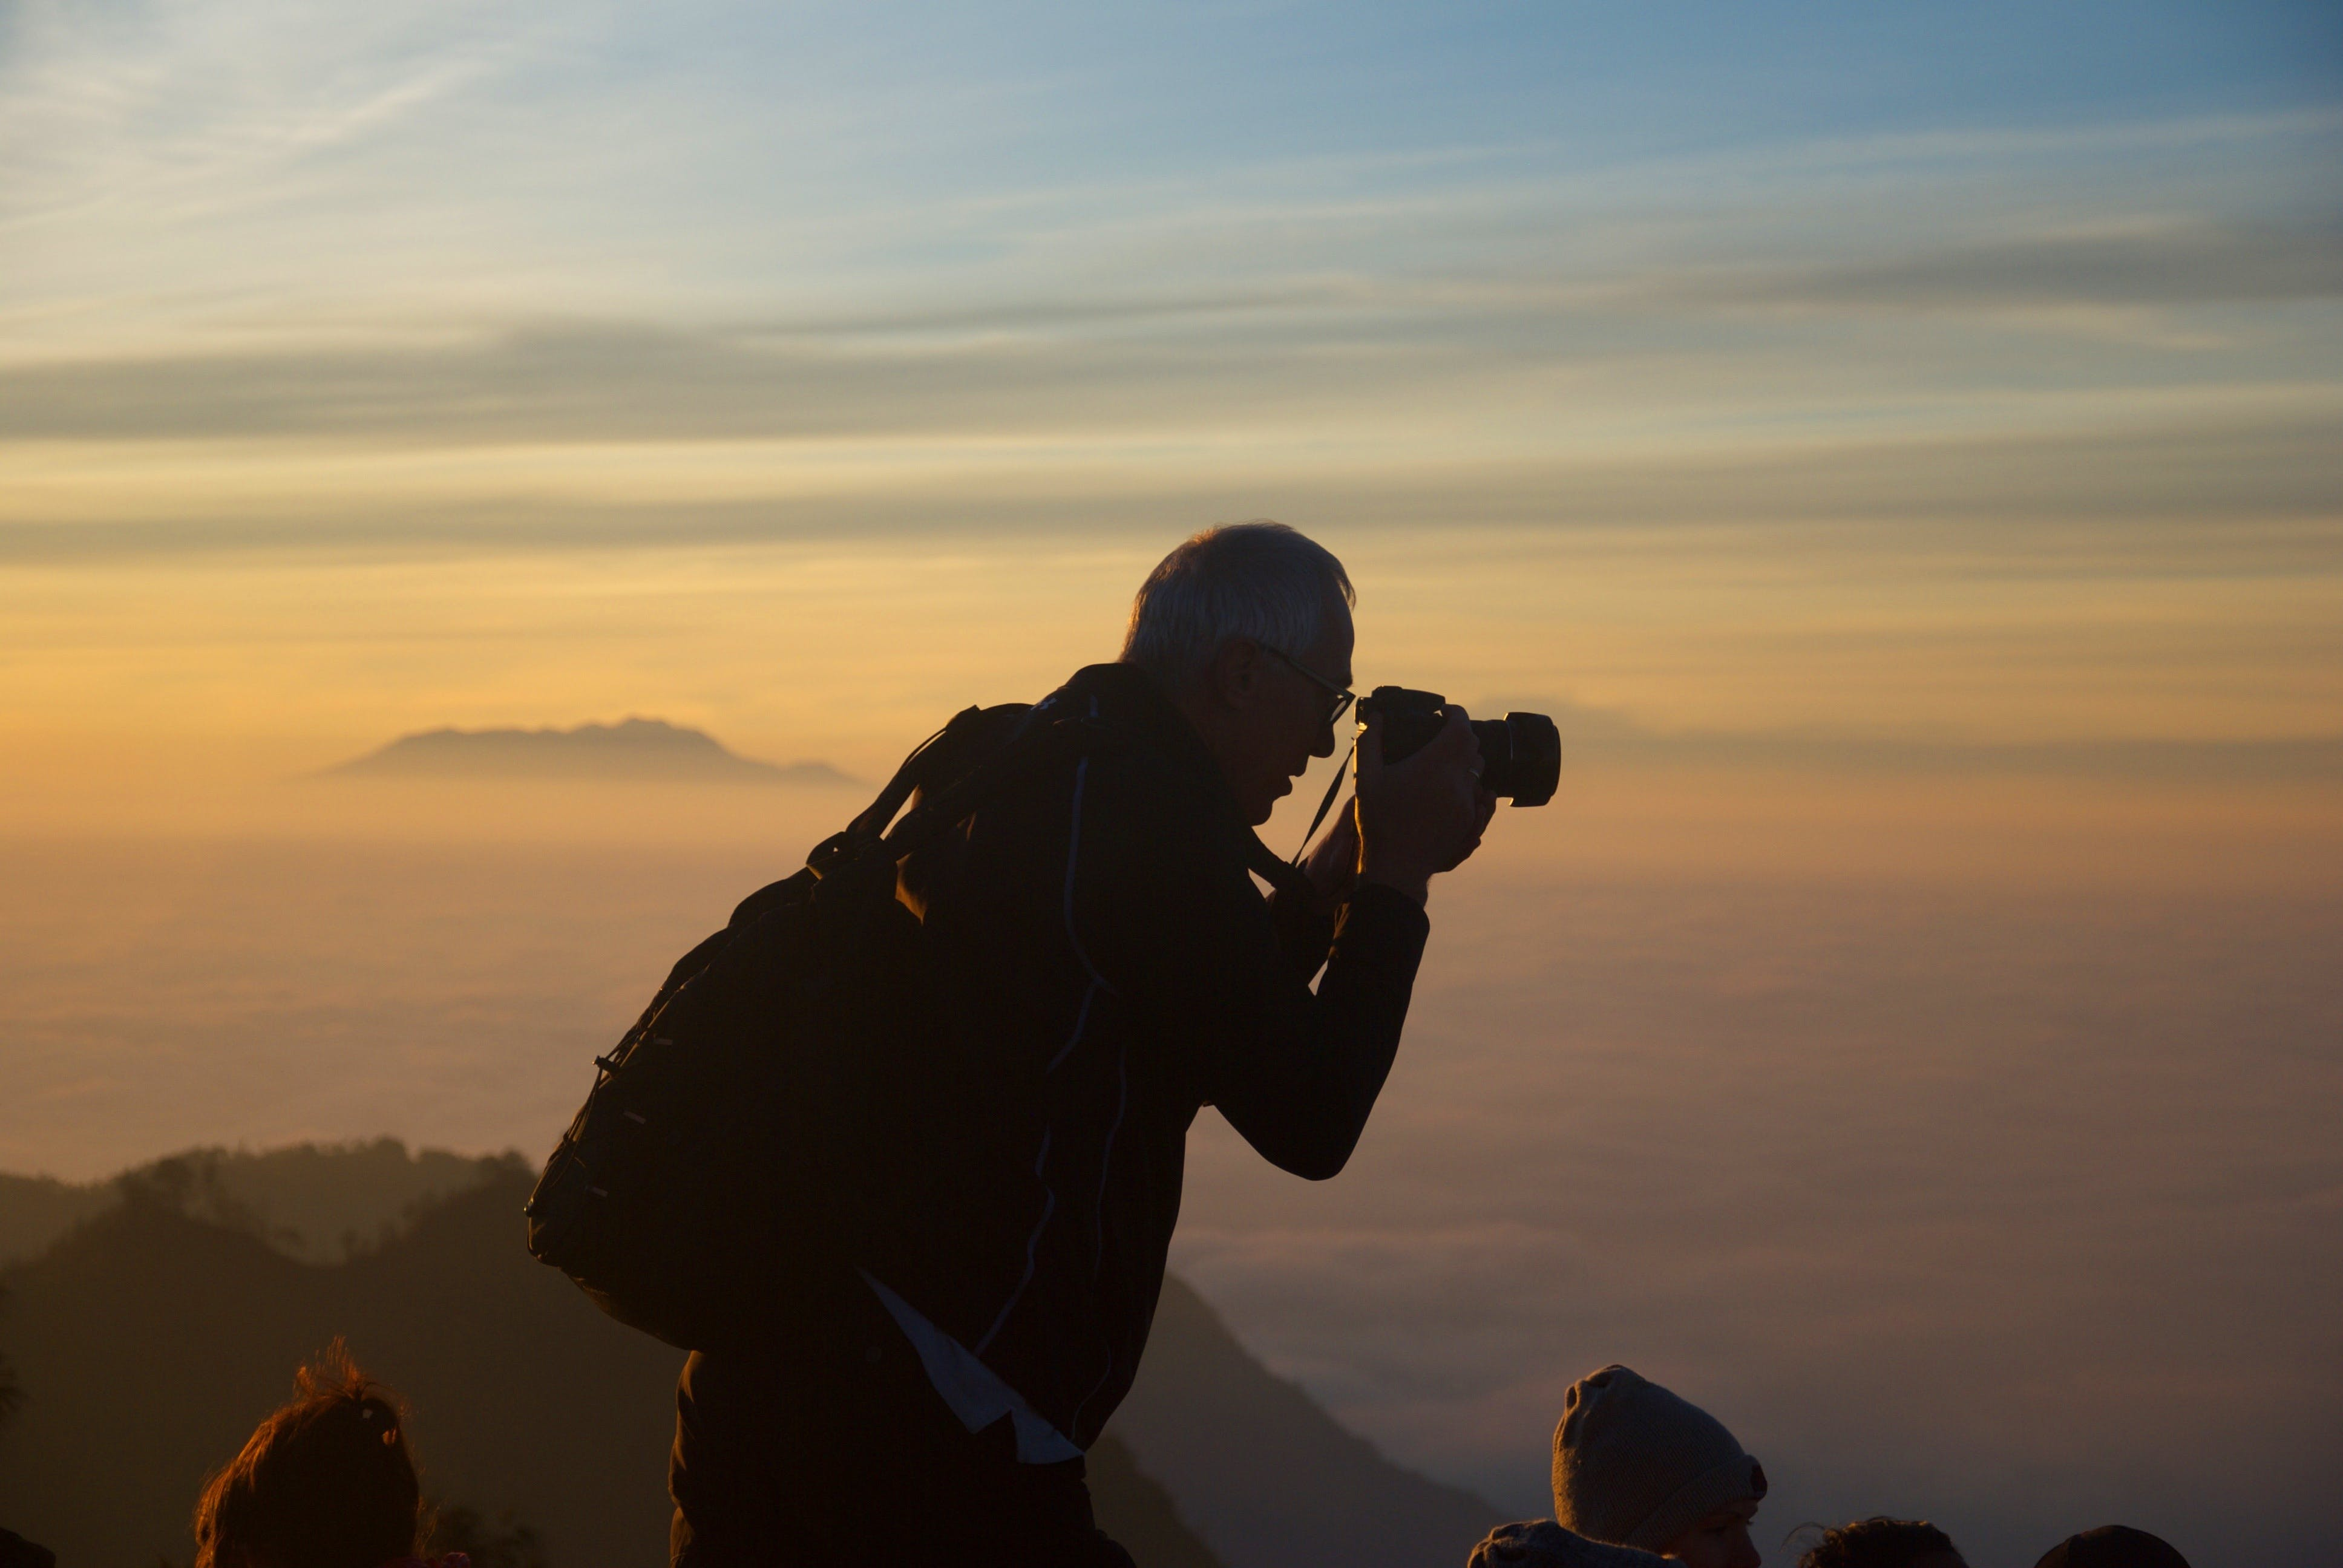 Woman on Mountain Capturing Sea Ocean Under Blue and White Sky during Sunrise